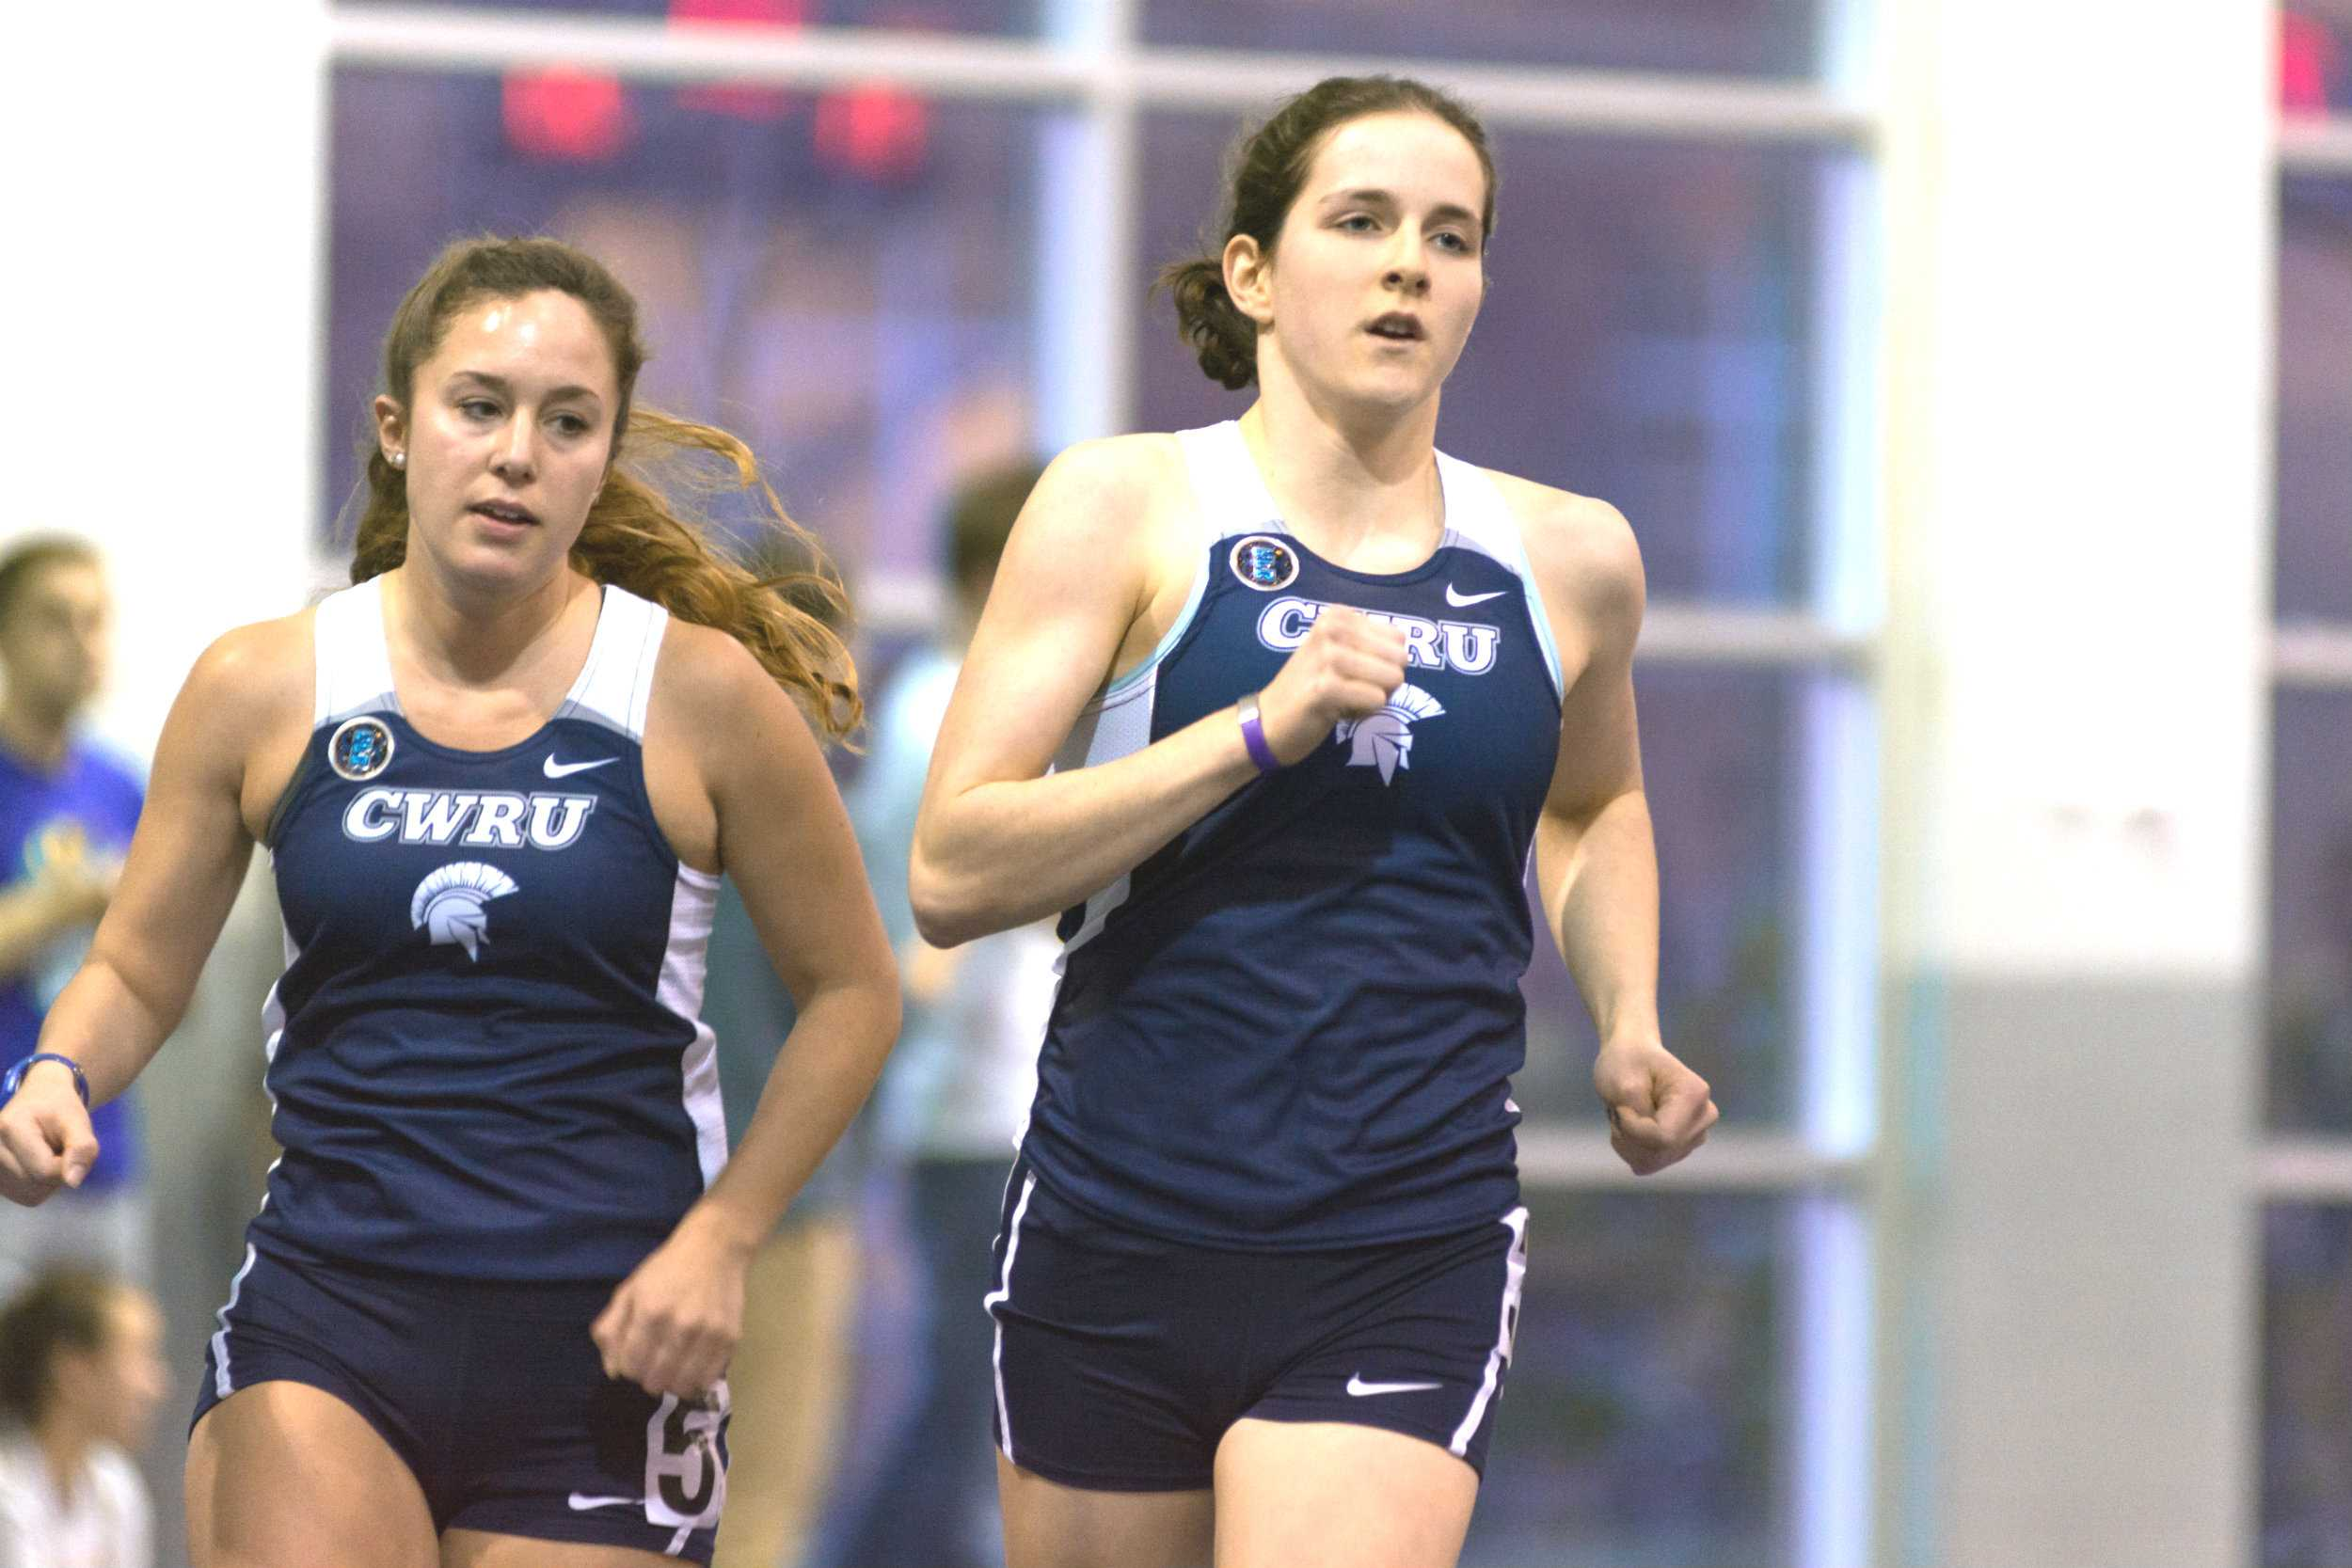 The Spartans prepare for four meets in two weeks as they excel at the Jim Wuske Invitational.